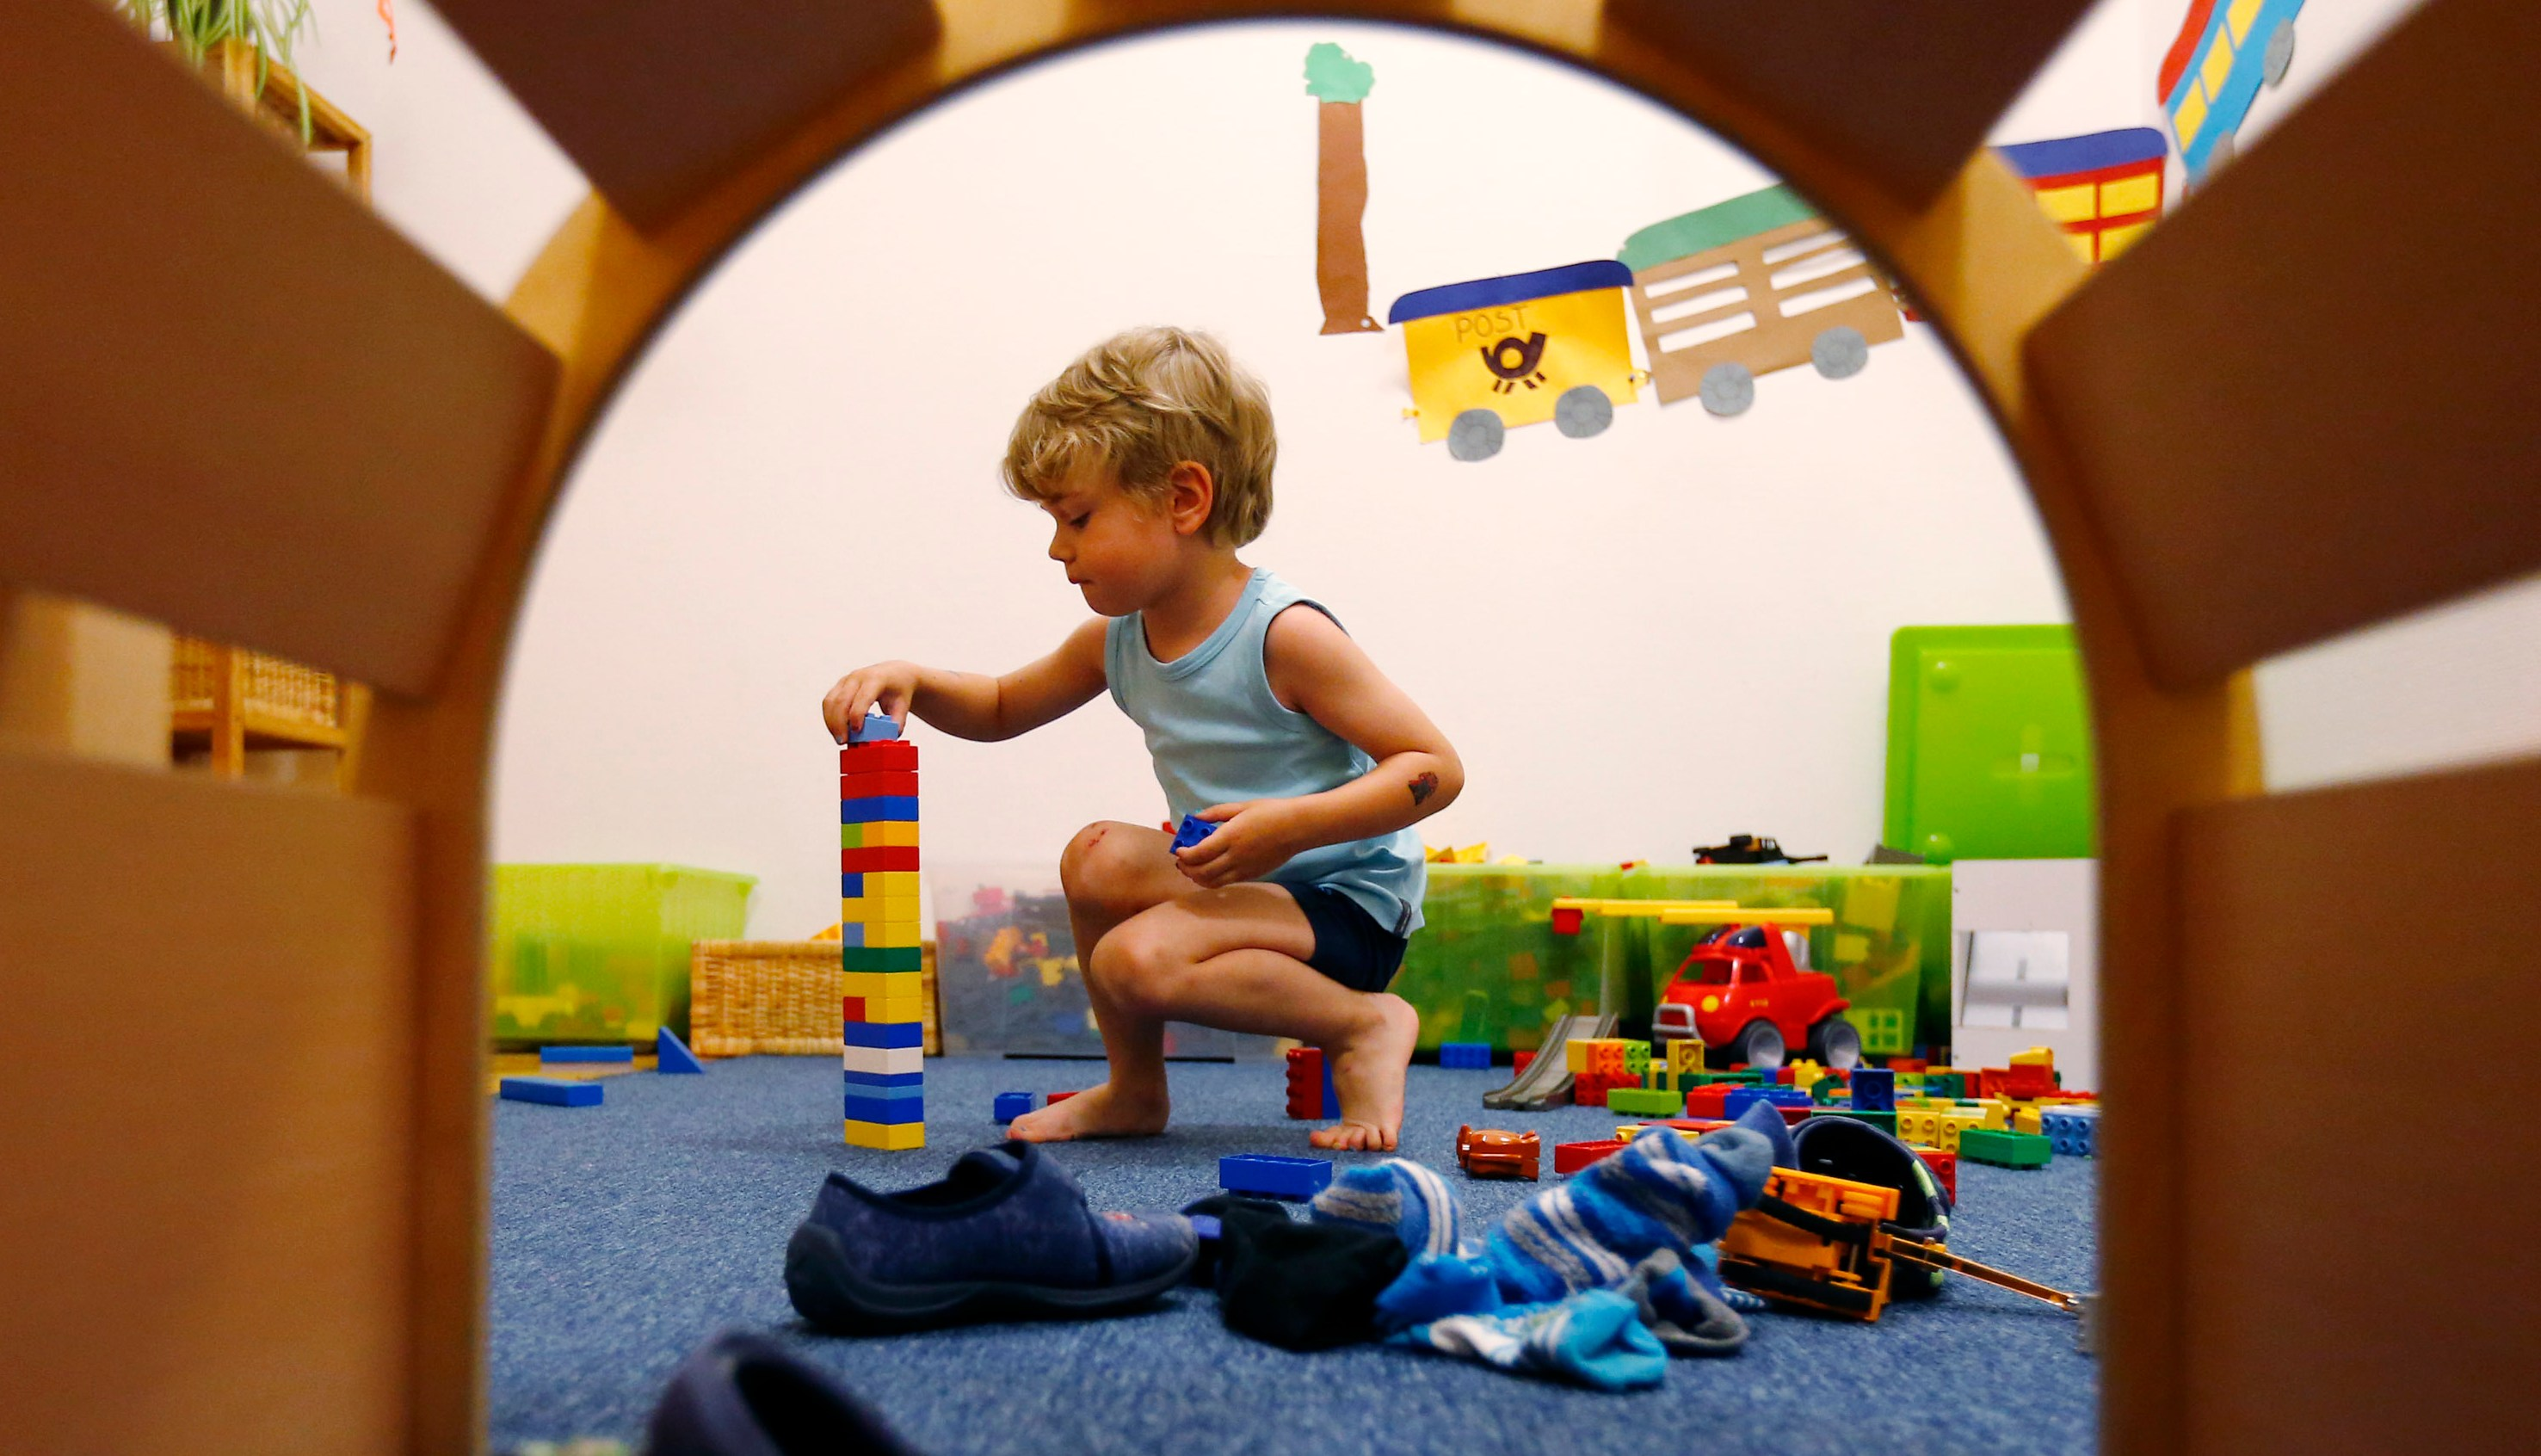 A four year-old boy plays with building blocks